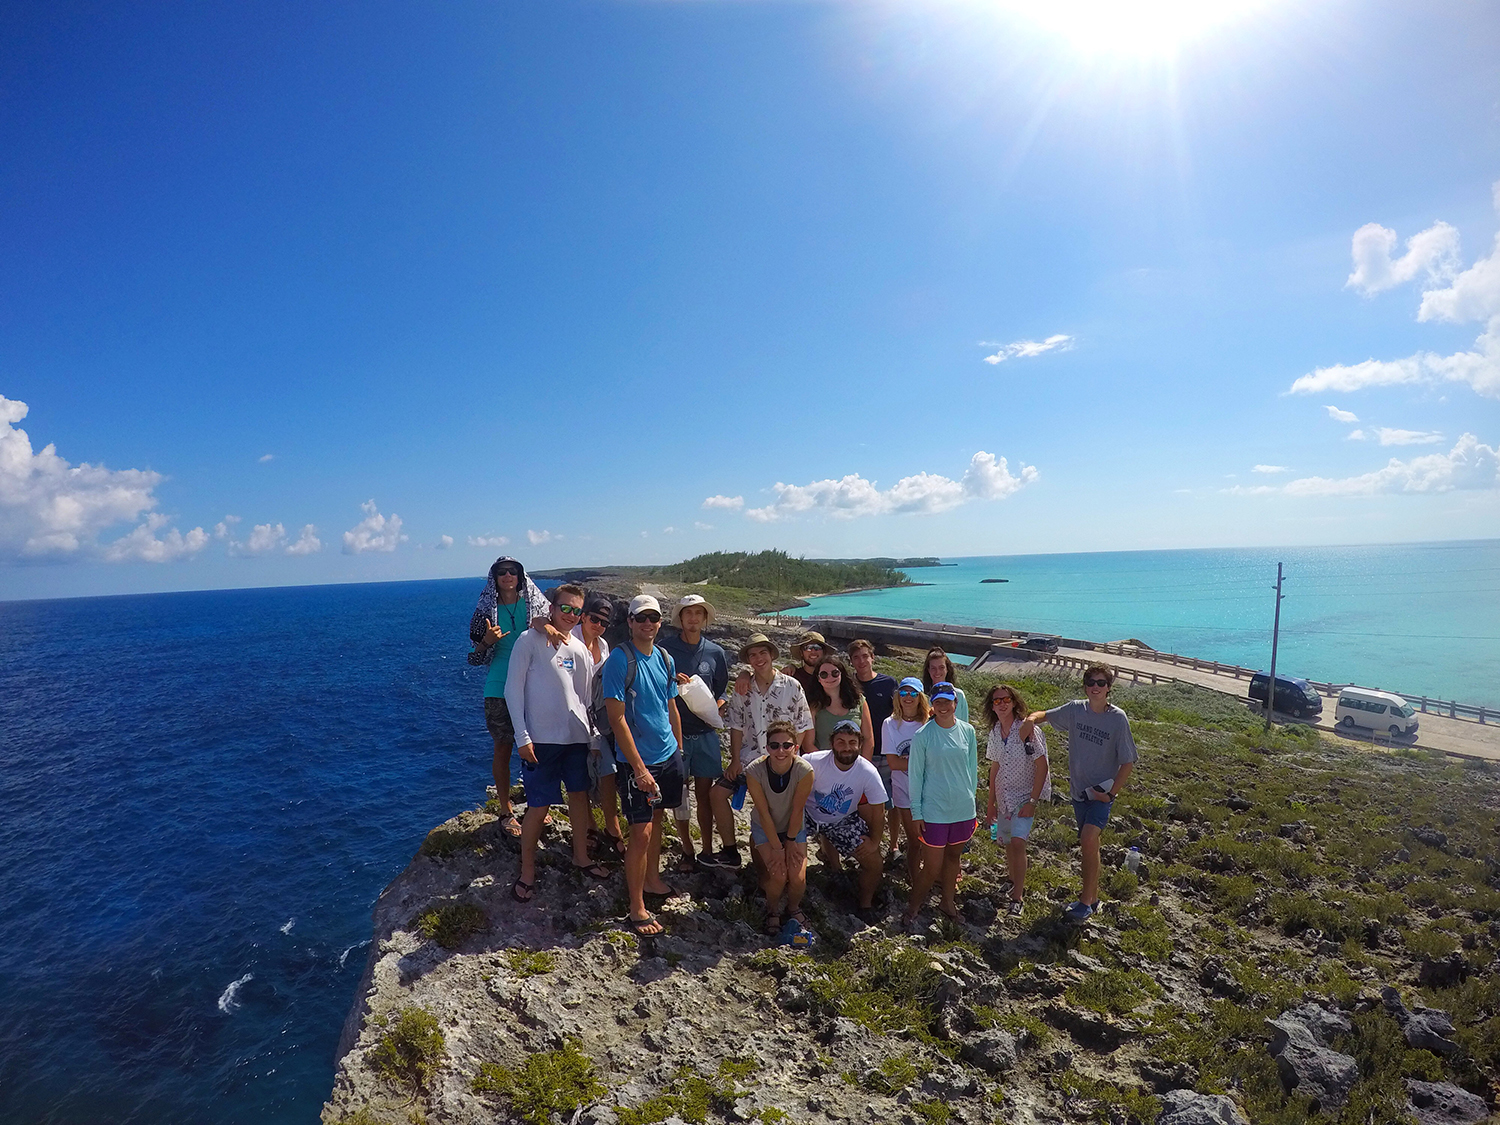 The HIOBS team on Glass Window Bridge in Northern Eleuthera